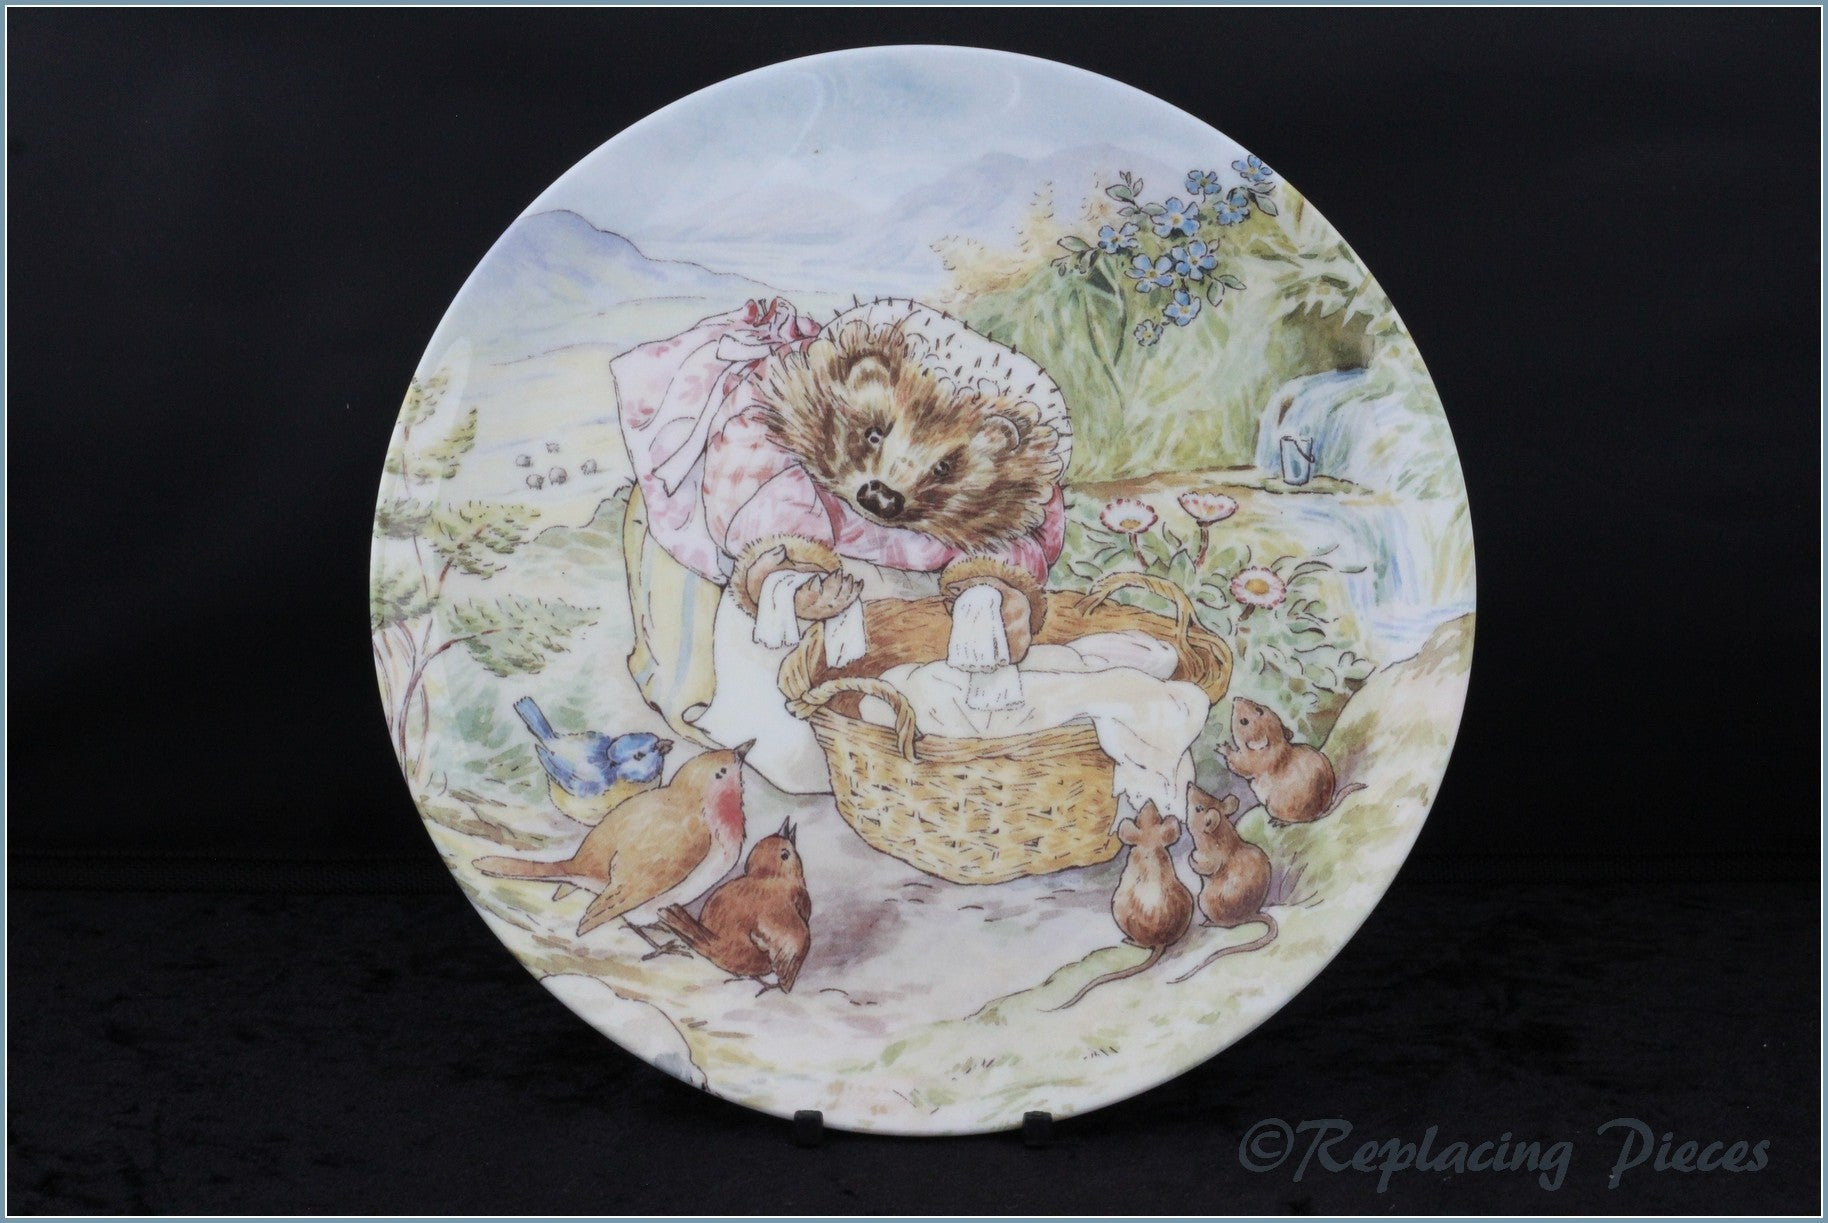 Wedgwood - The World Of Beatrix Potter - The Tale Of Mrs Tiggle-Winkle